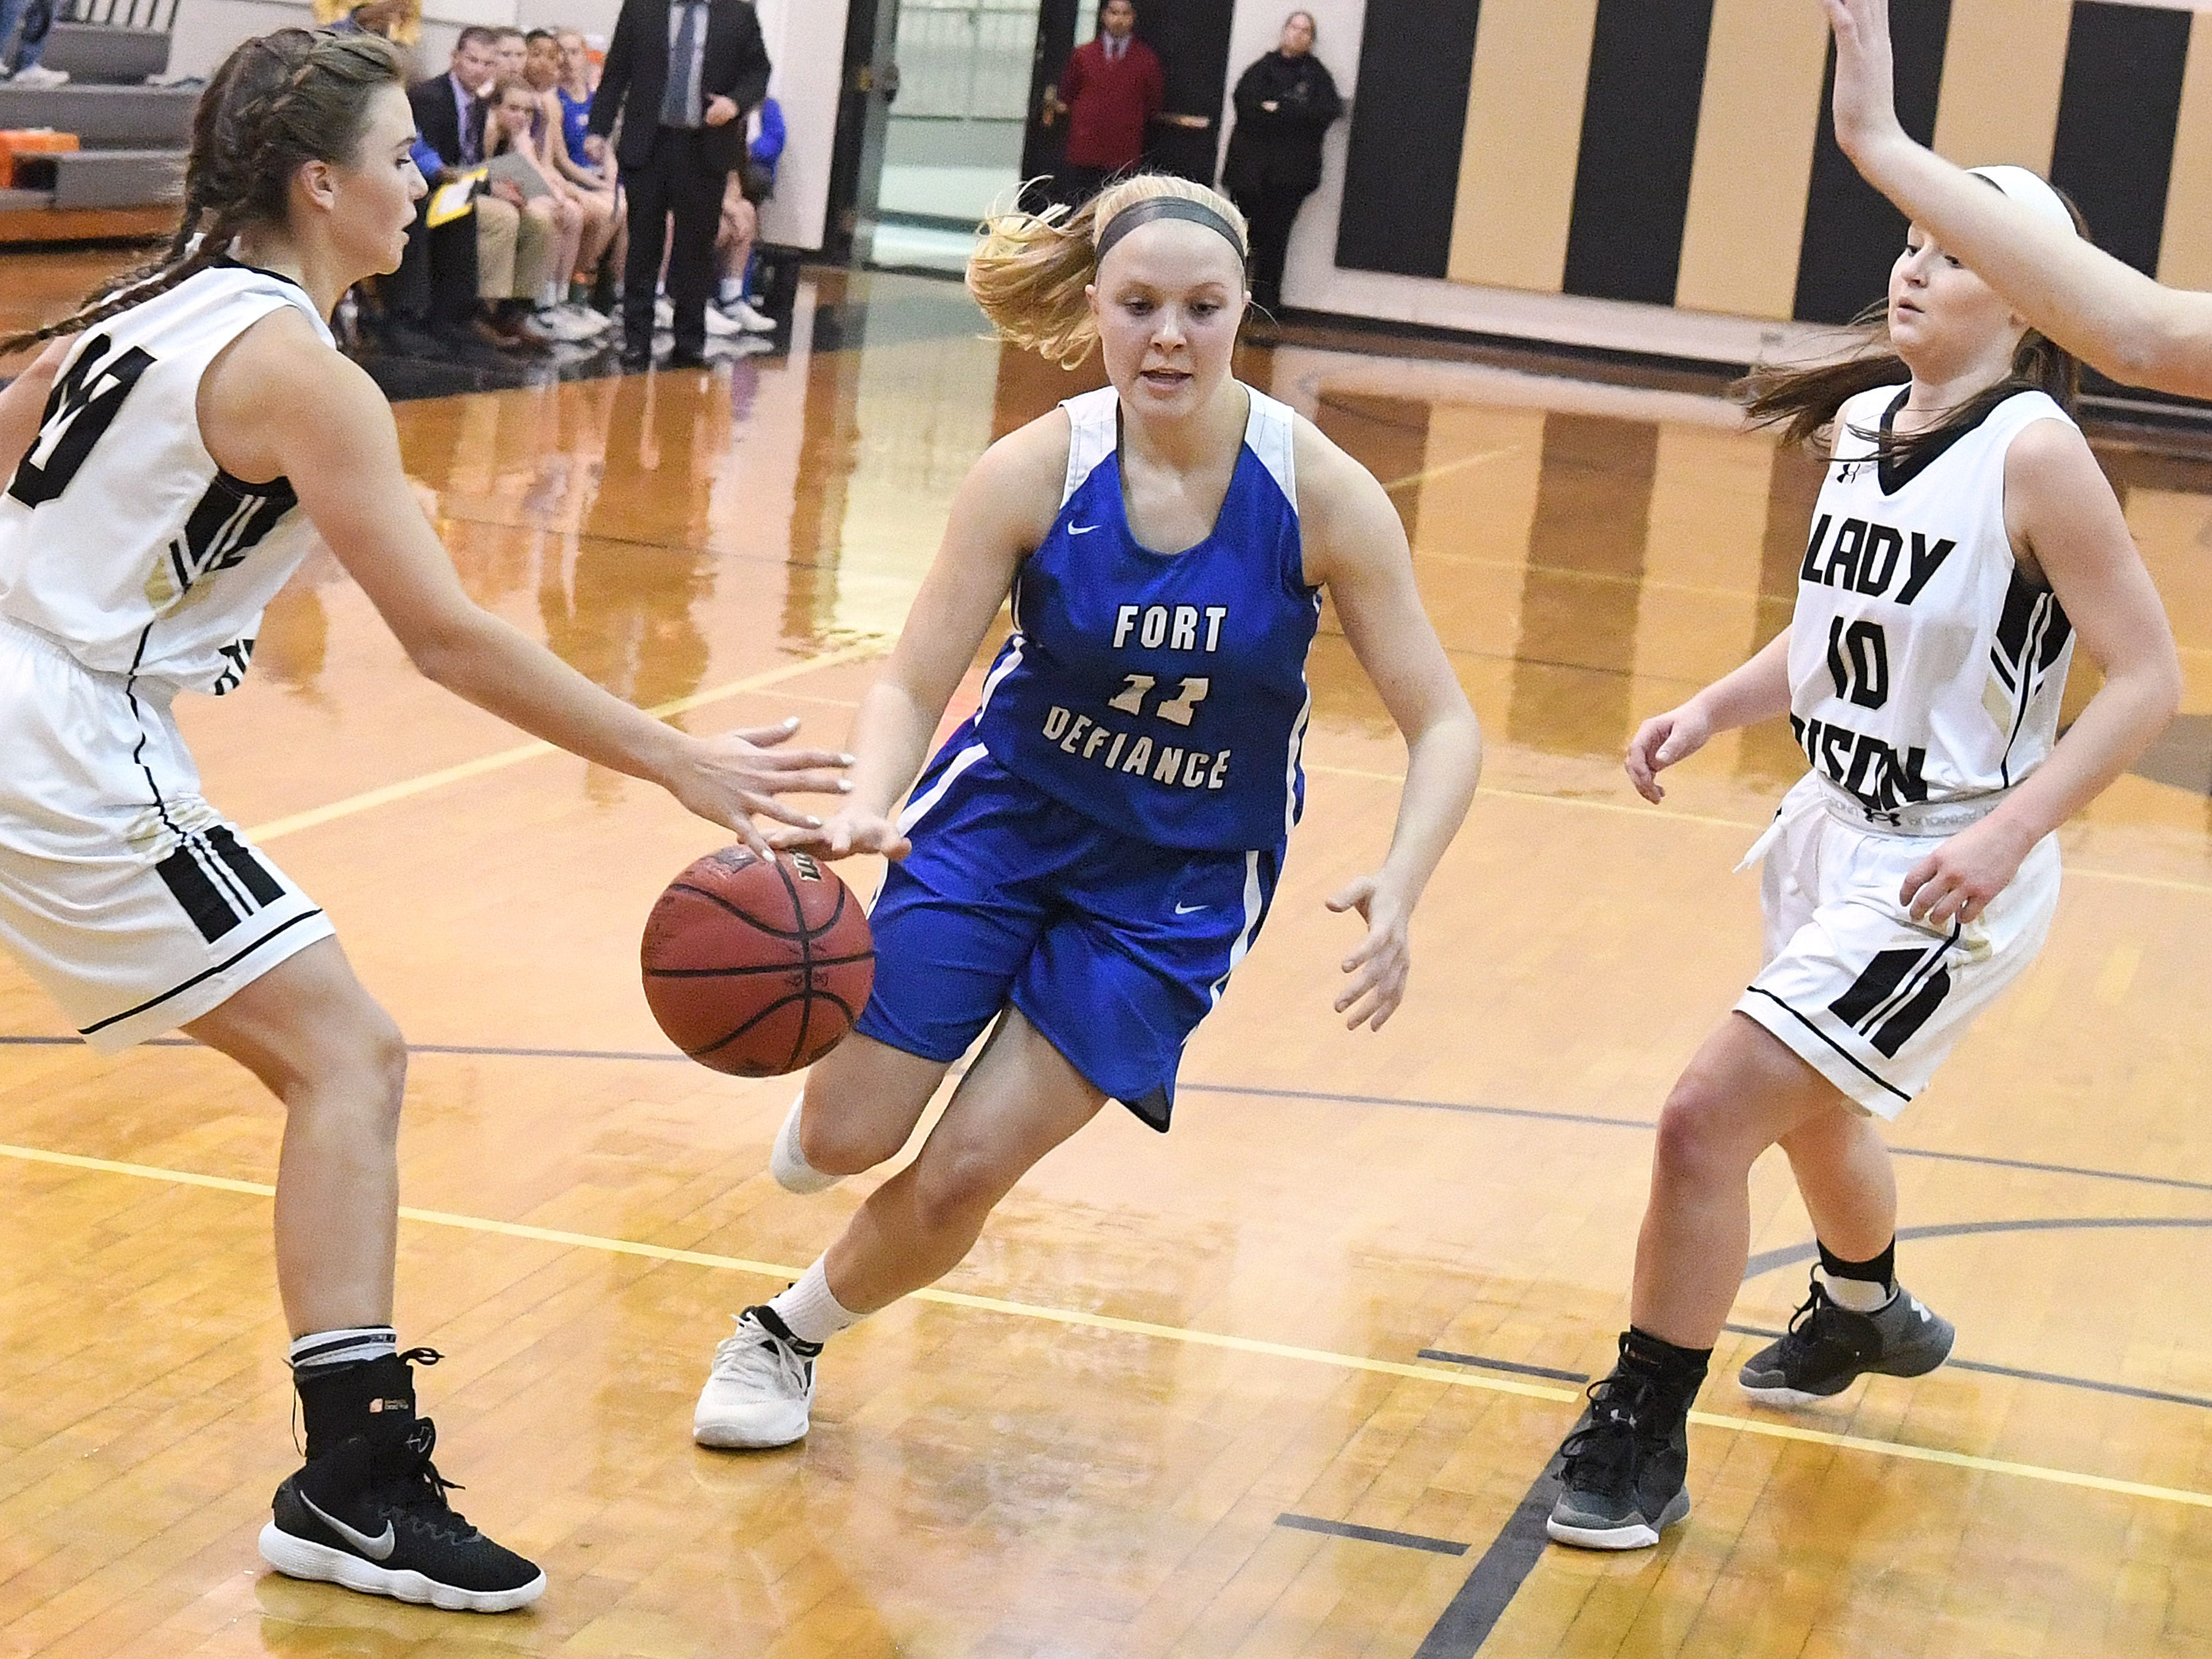 Fort Defiance's Jordan Shultz moves the ball during a game played in Swoope on Wednesday, Dec. 5, 2018.